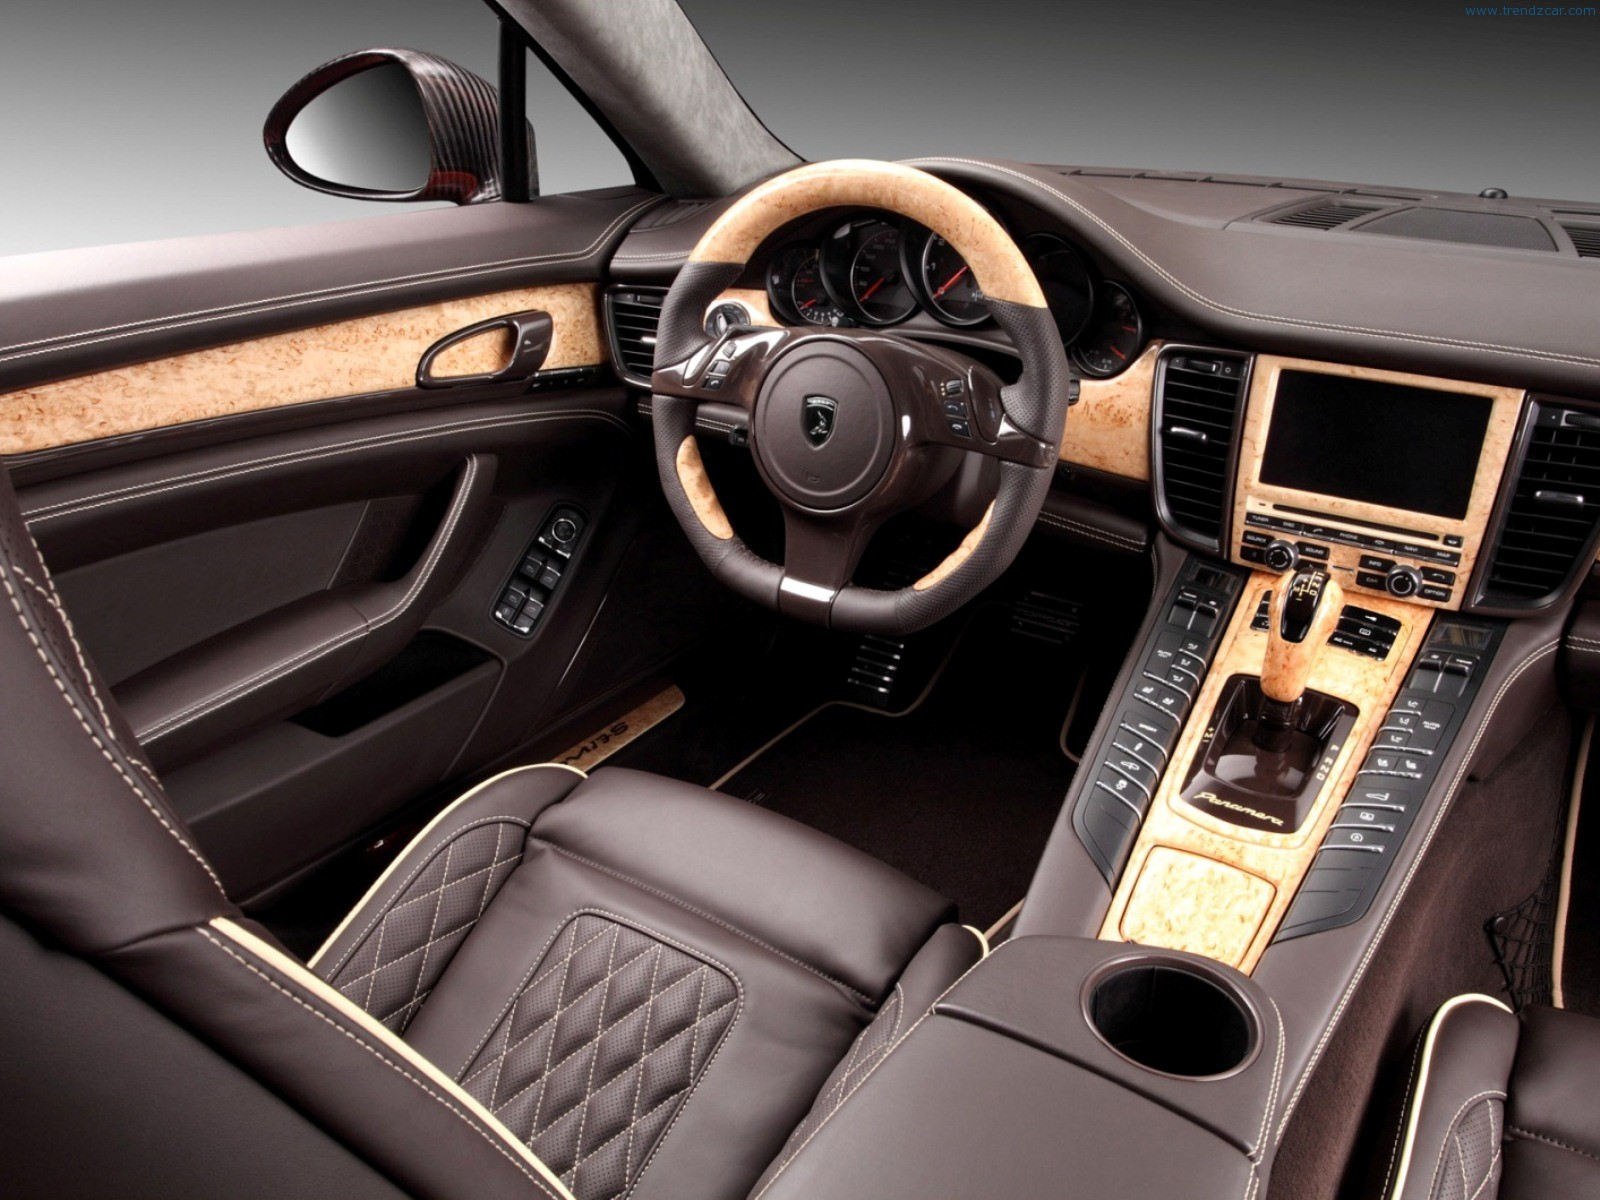 hight resolution of epcp 1009 08 o fab design panamera interior ls400 interior mods from the mild to the extreme